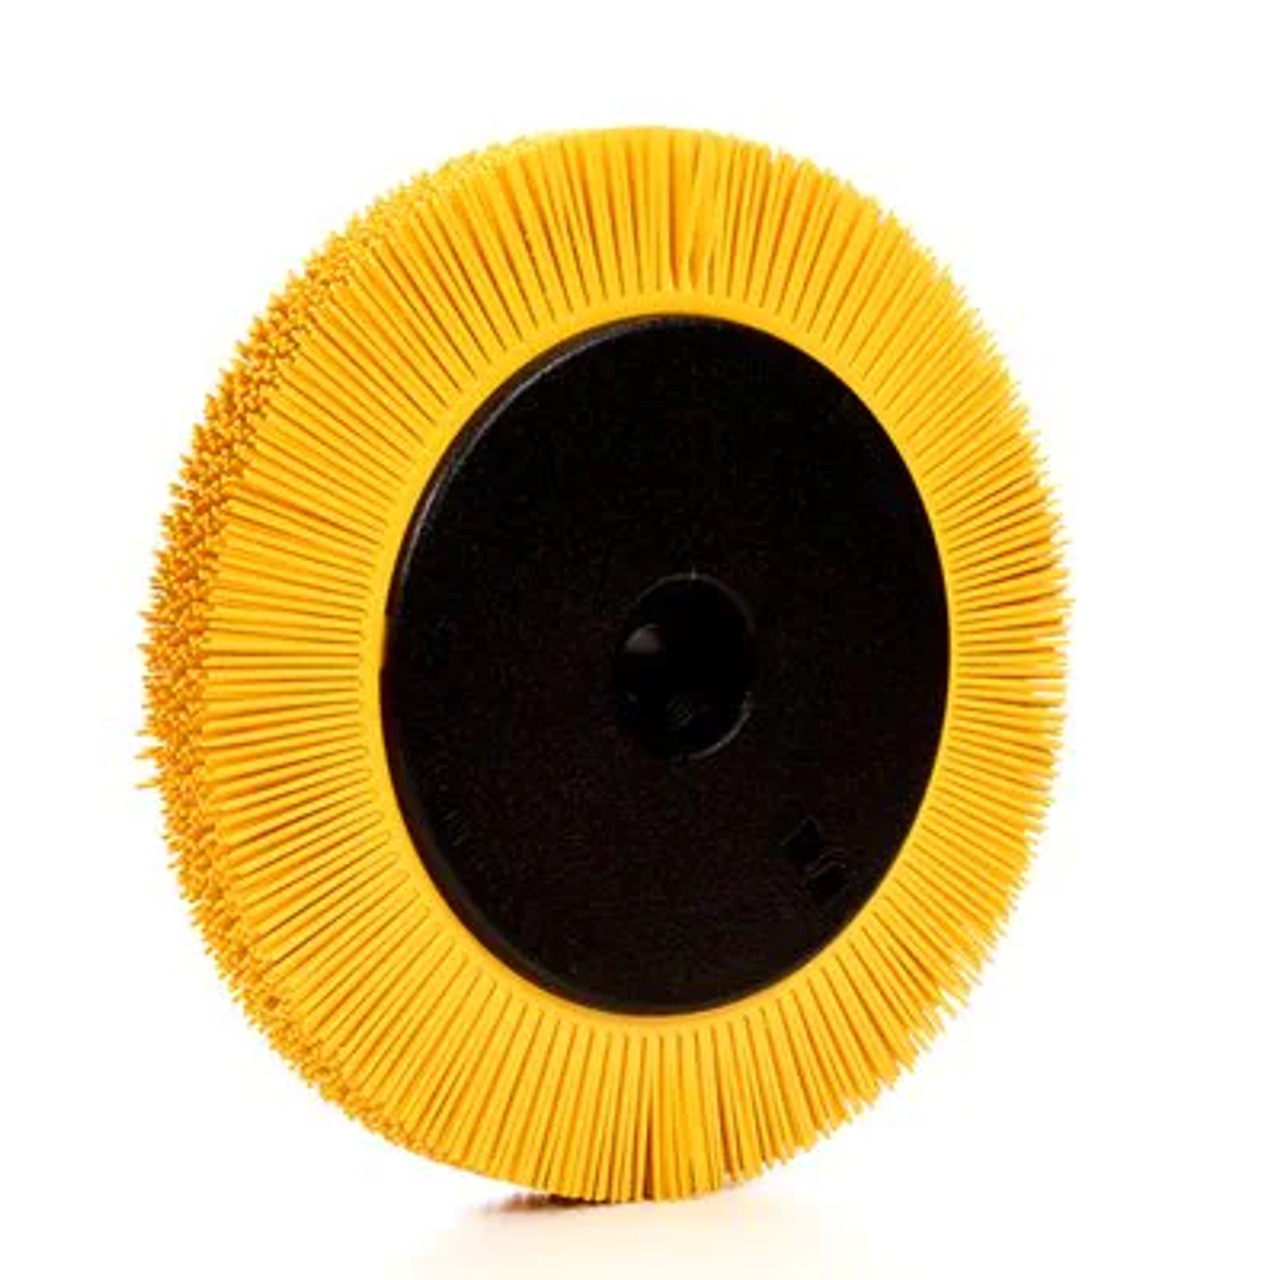 Scotch-Brite™ Radial Bristle Brush, 8 in x 1 in x 1-1/4 in 80 with Flange